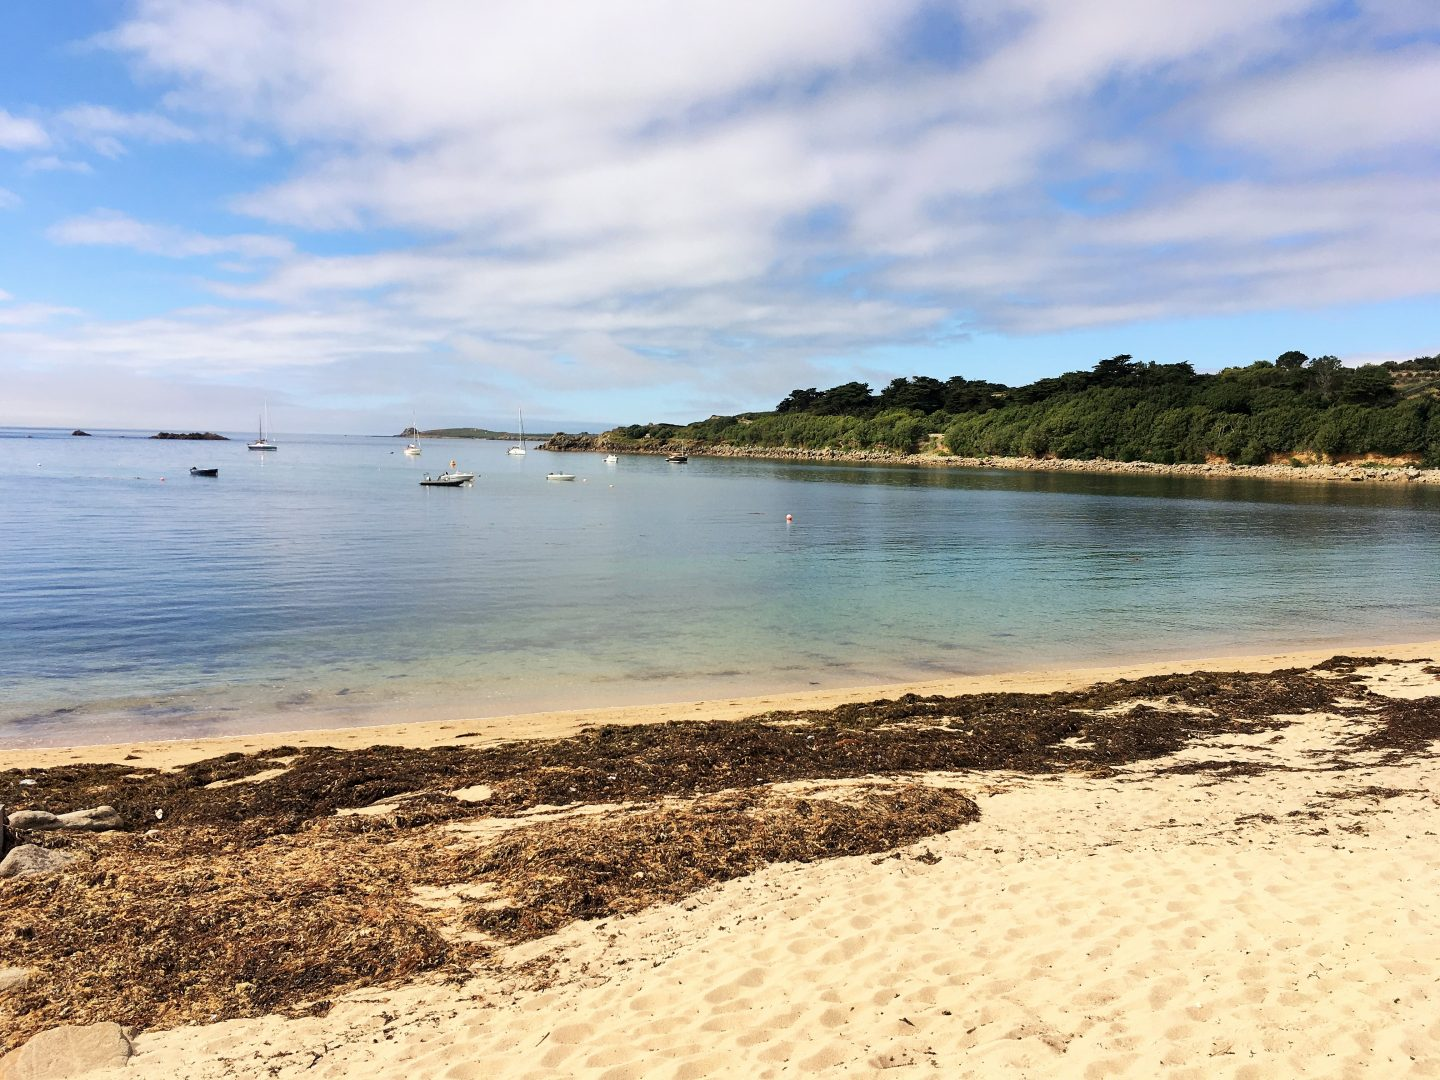 Porthcressa beach, visit the isles of scilly with kids